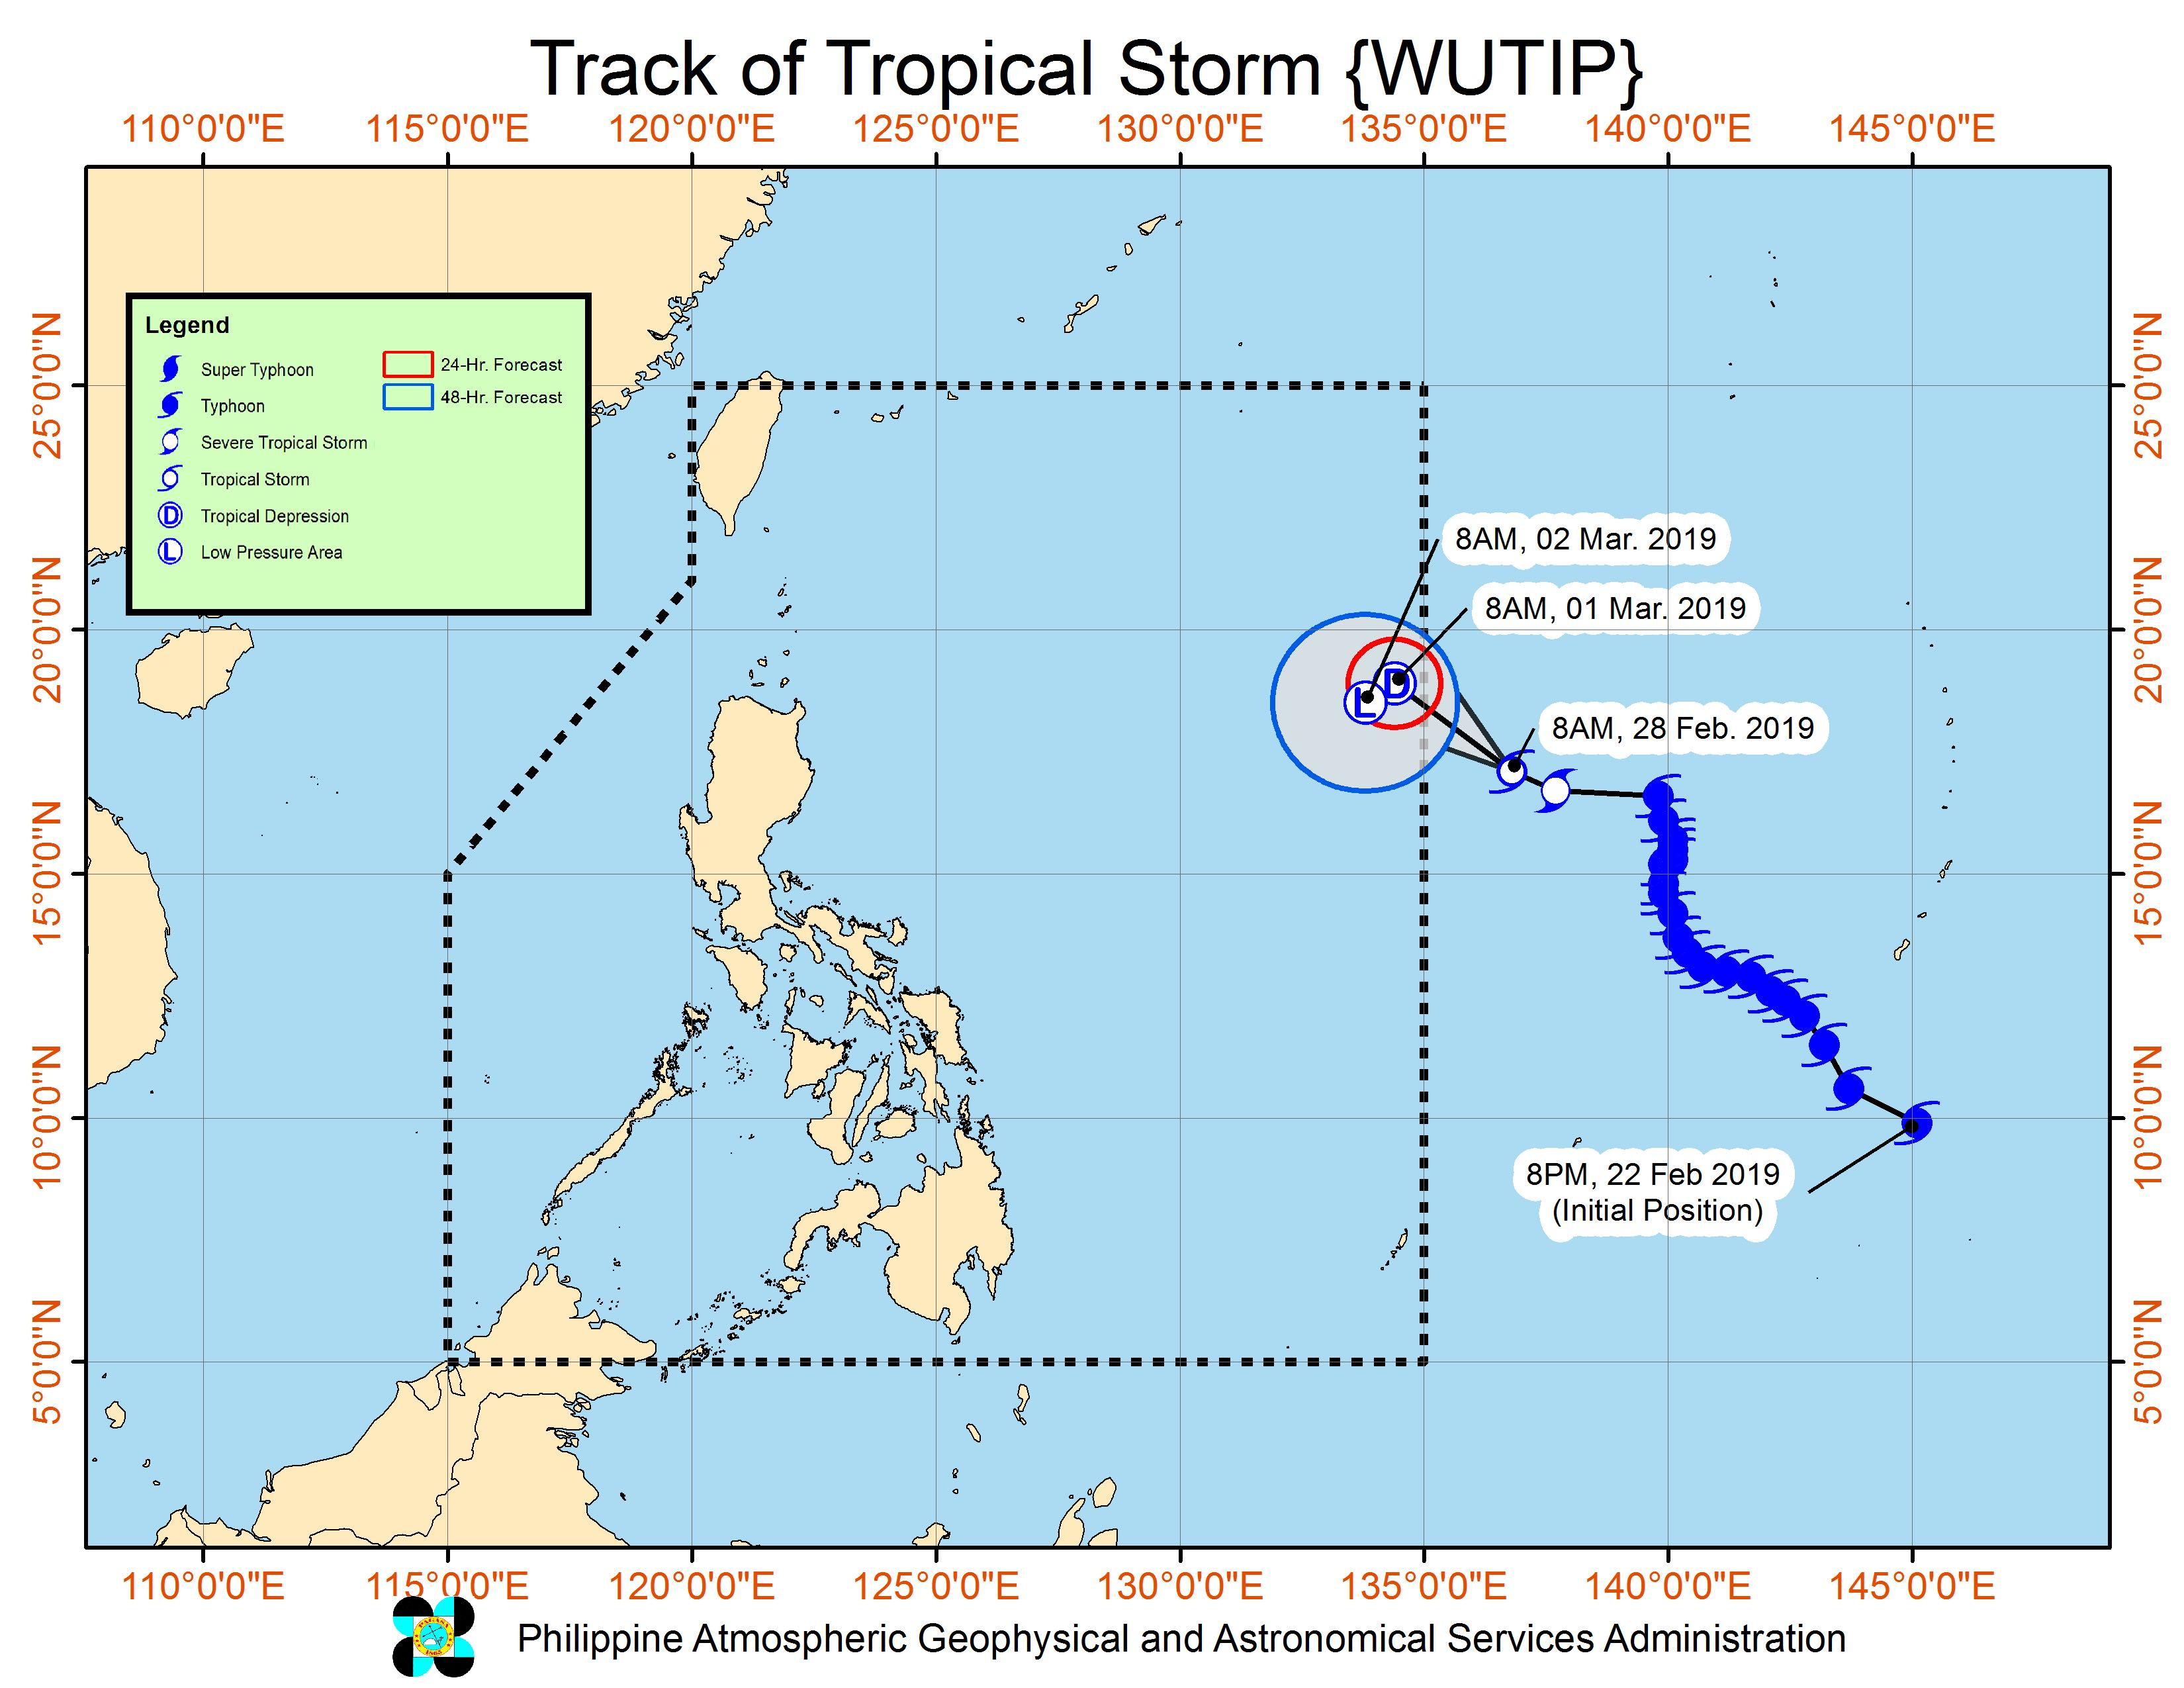 Forecast track of Tropical Storm Wutip as of February 28, 2019, 11 am. Image from PAGASA